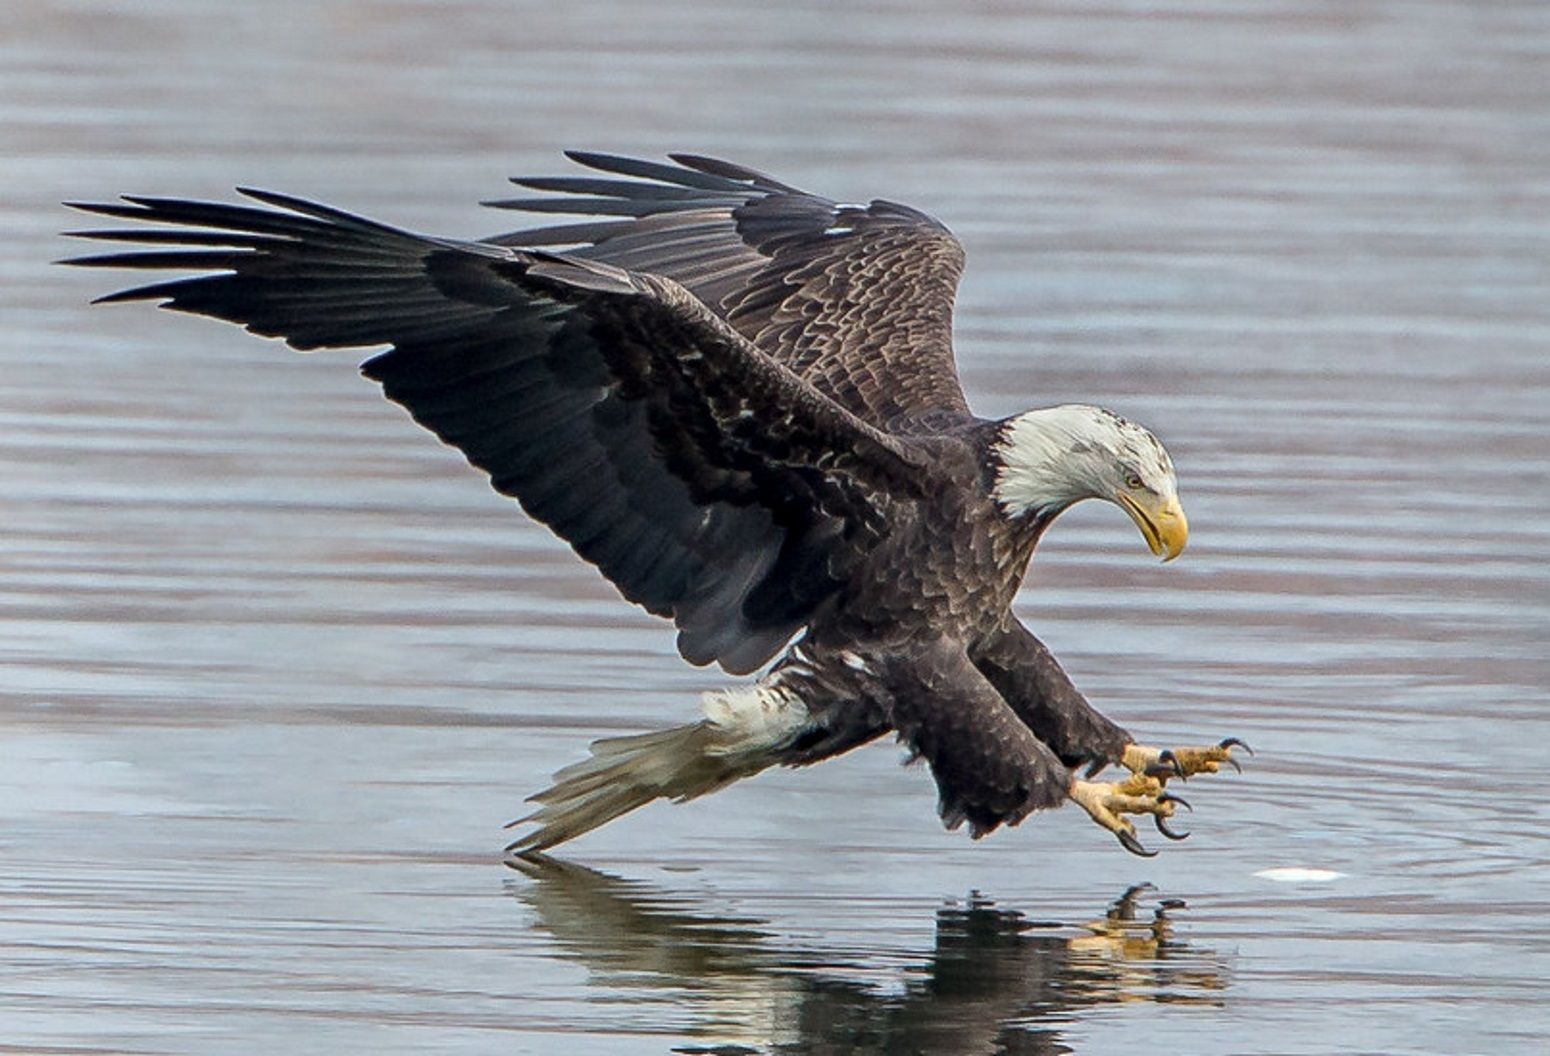 Eagle on water